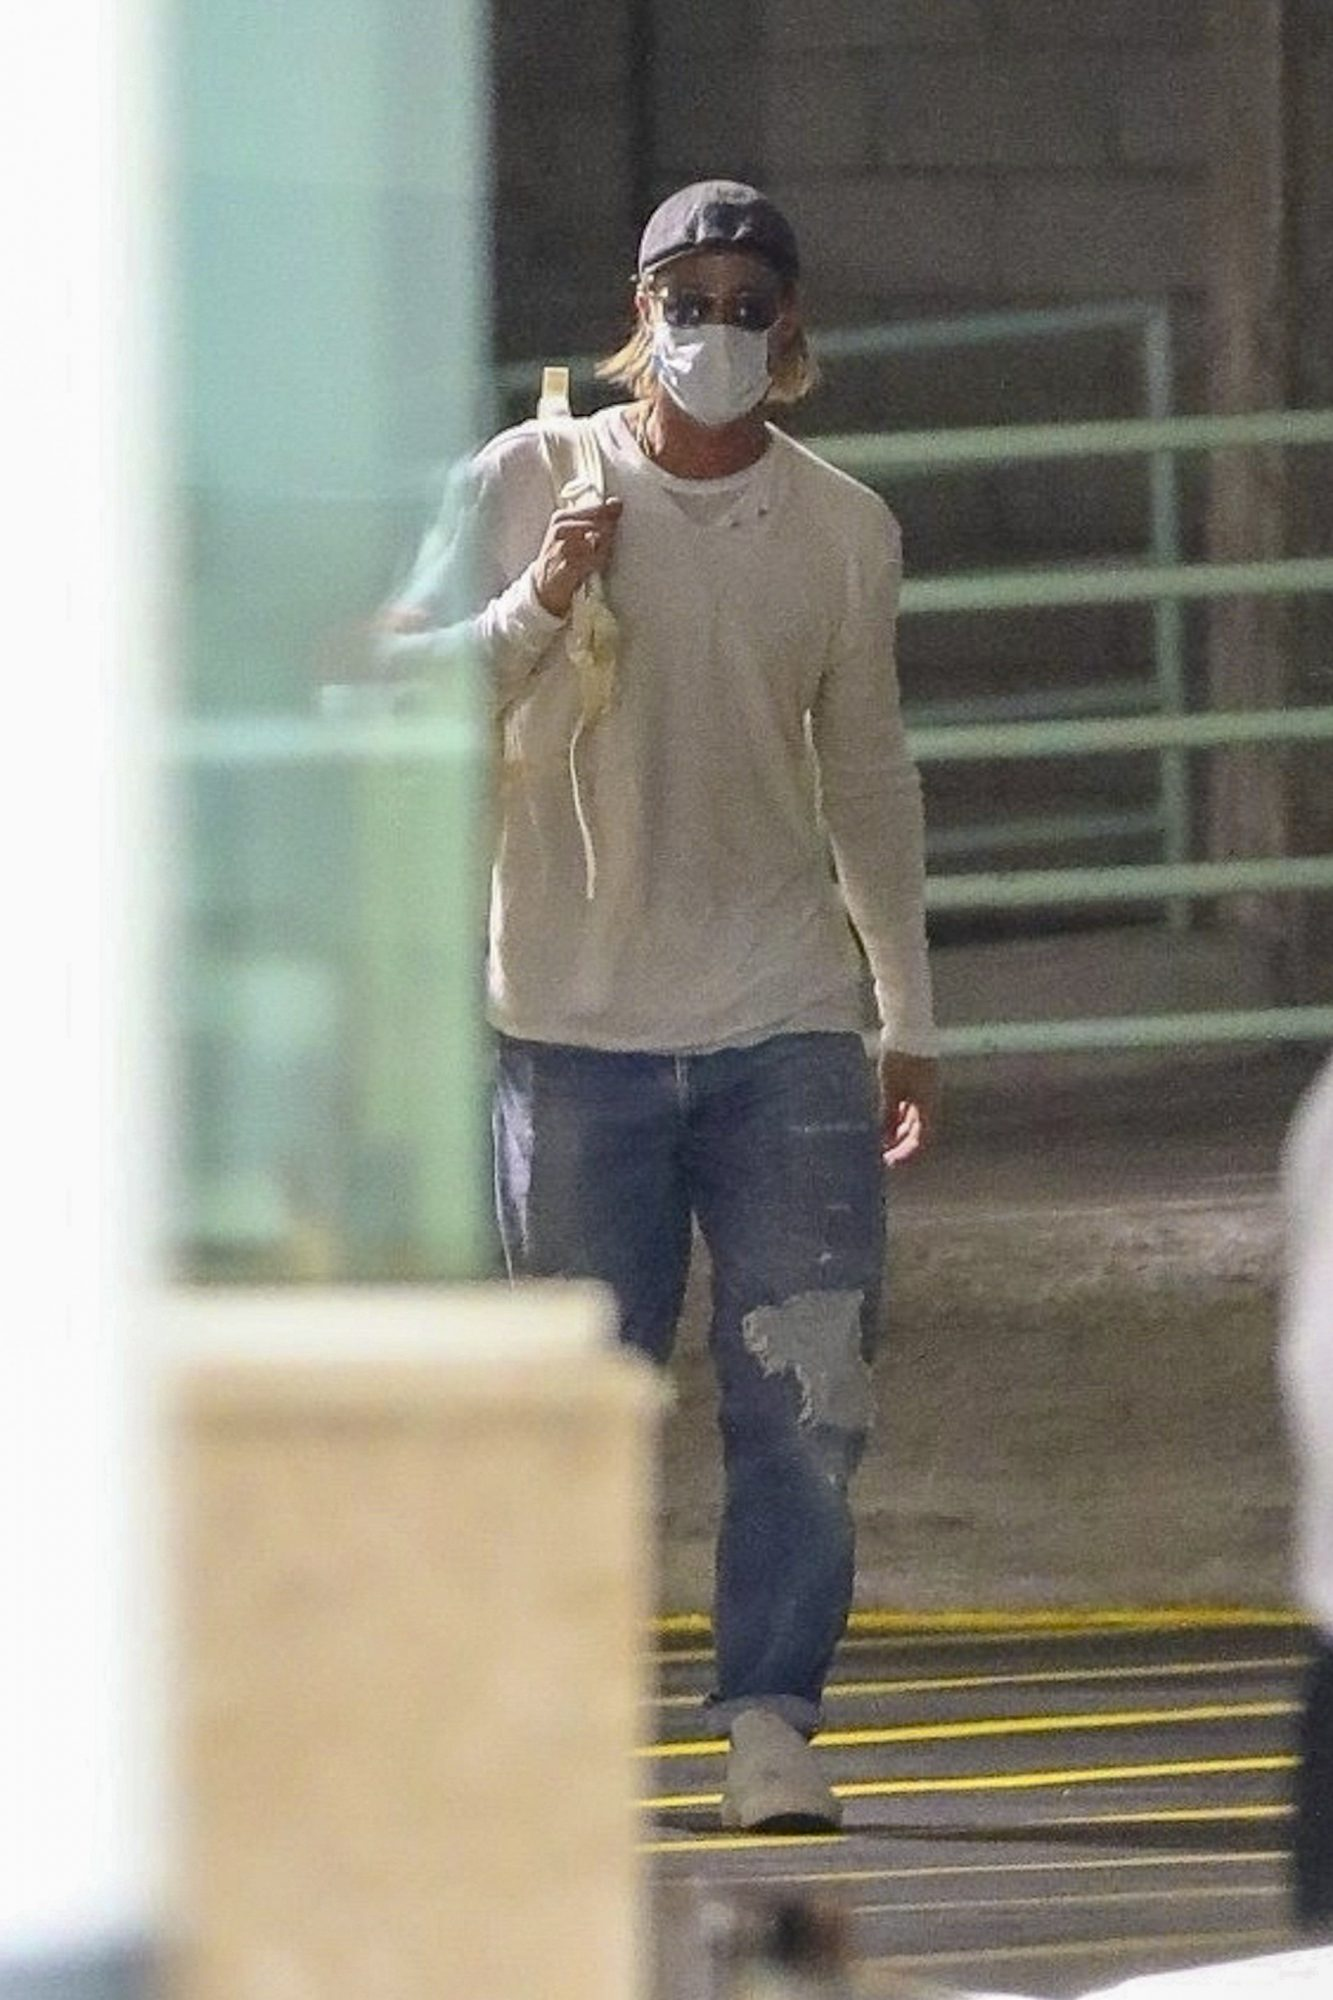 Brad Pitt keeps it safe wearing a mask as he arrives at a business building in L.A carrying a backpack